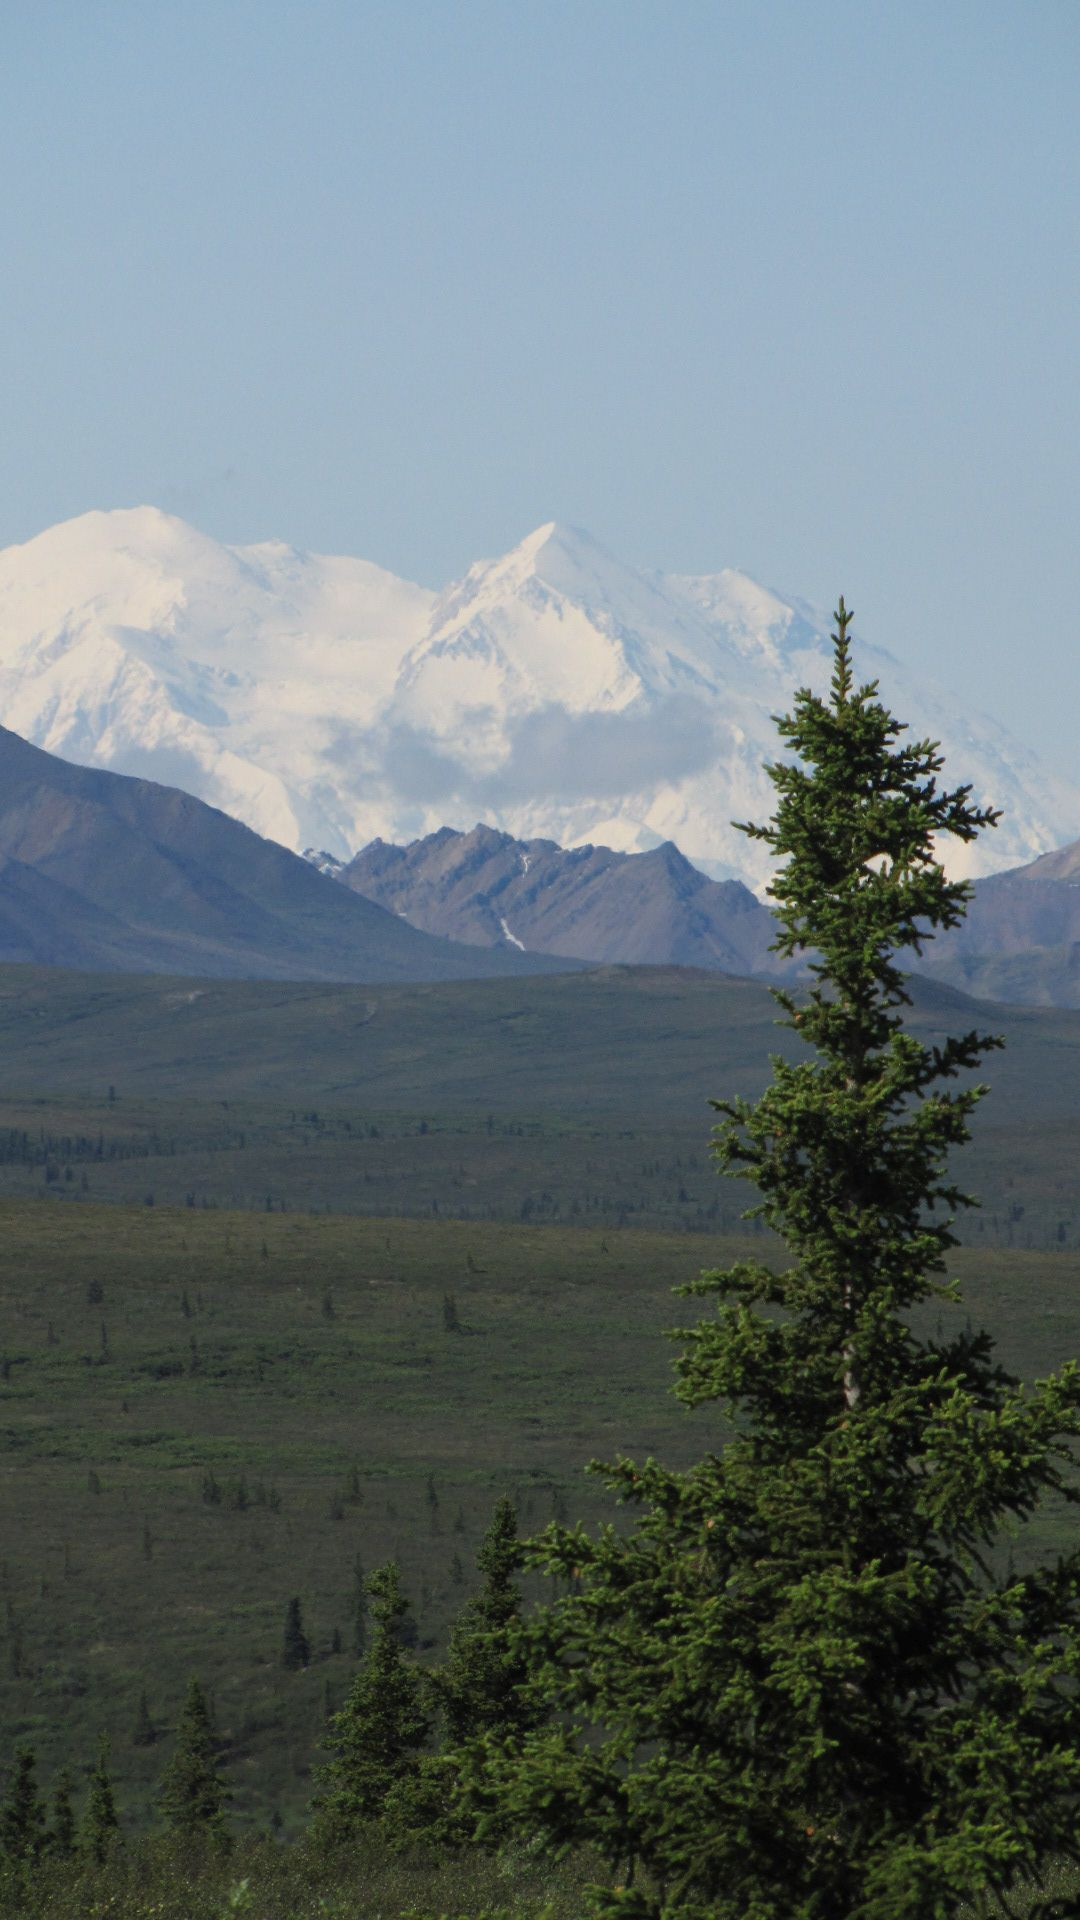 Denali Nat Pk - MOUNT MCKINLEY (aka Denali) SIGHTED! (tallest moontin in N America at ~20,000 feet)